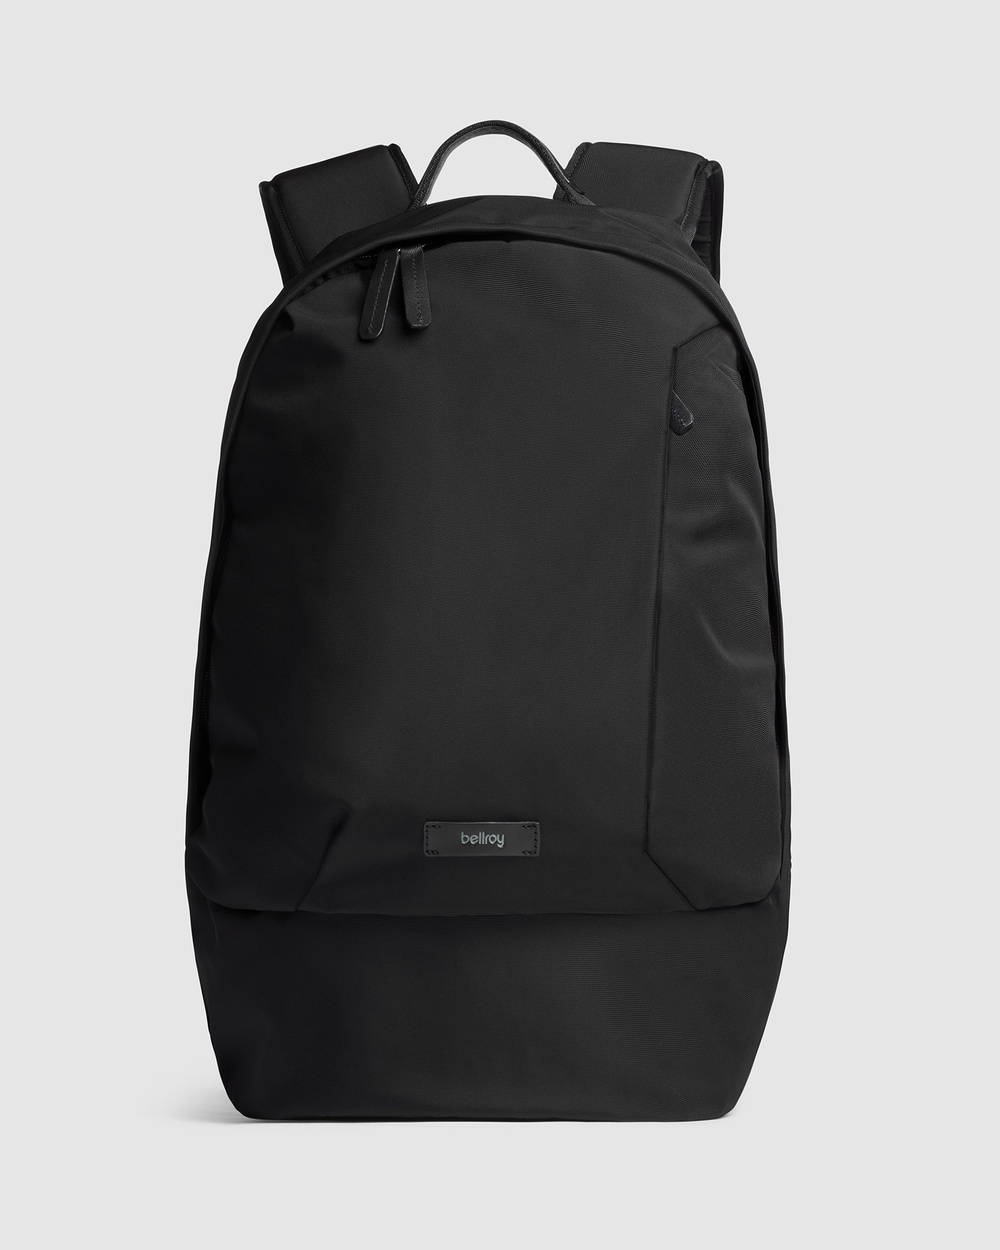 Bellroy Classic Backpack Second Edition Backpacks Black